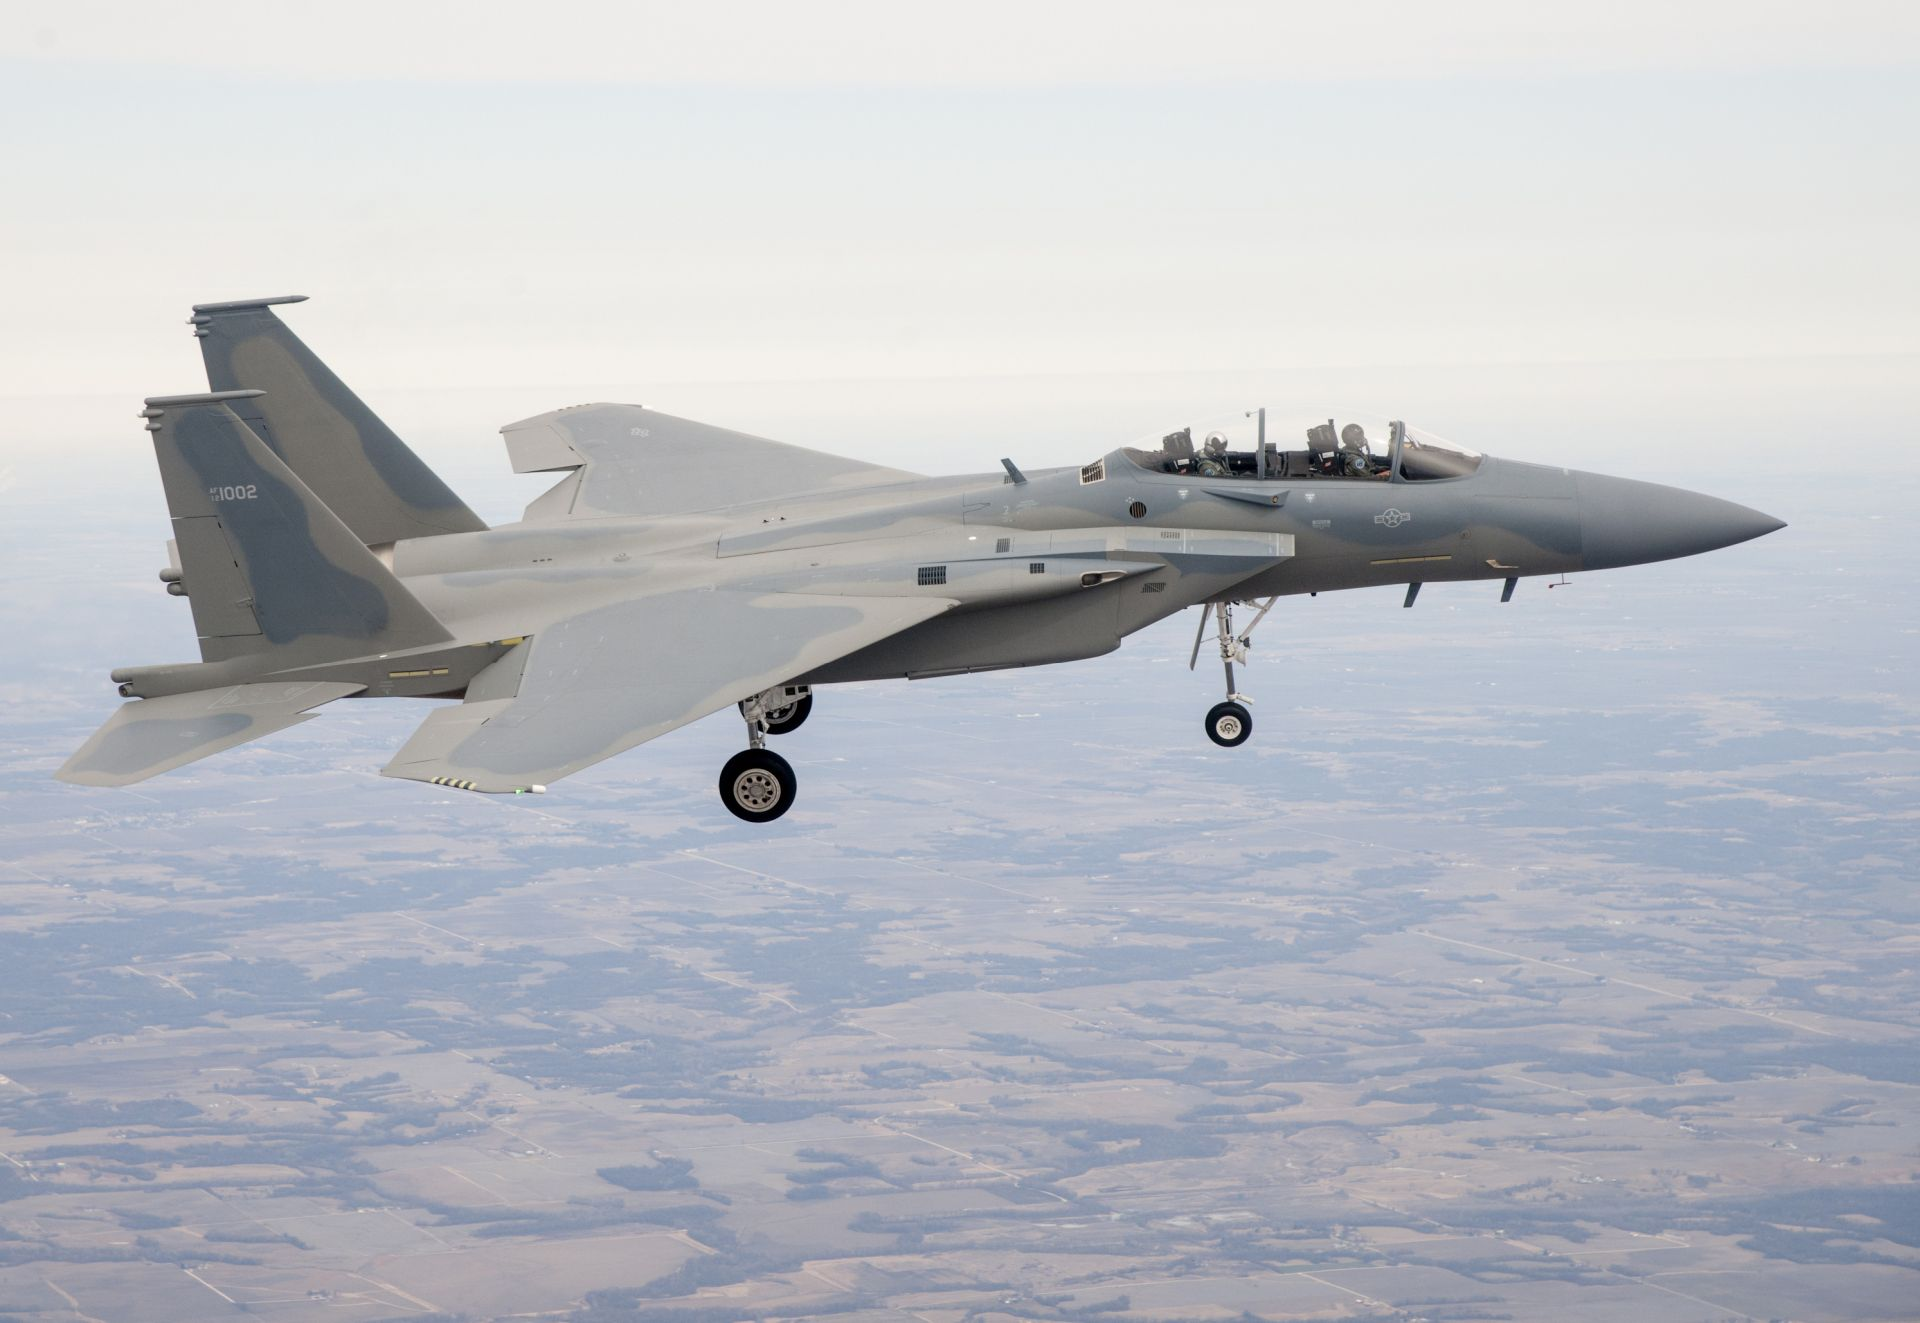 royal saudi air force flies high with new f 15sa fighter jets at defencetalk. Black Bedroom Furniture Sets. Home Design Ideas